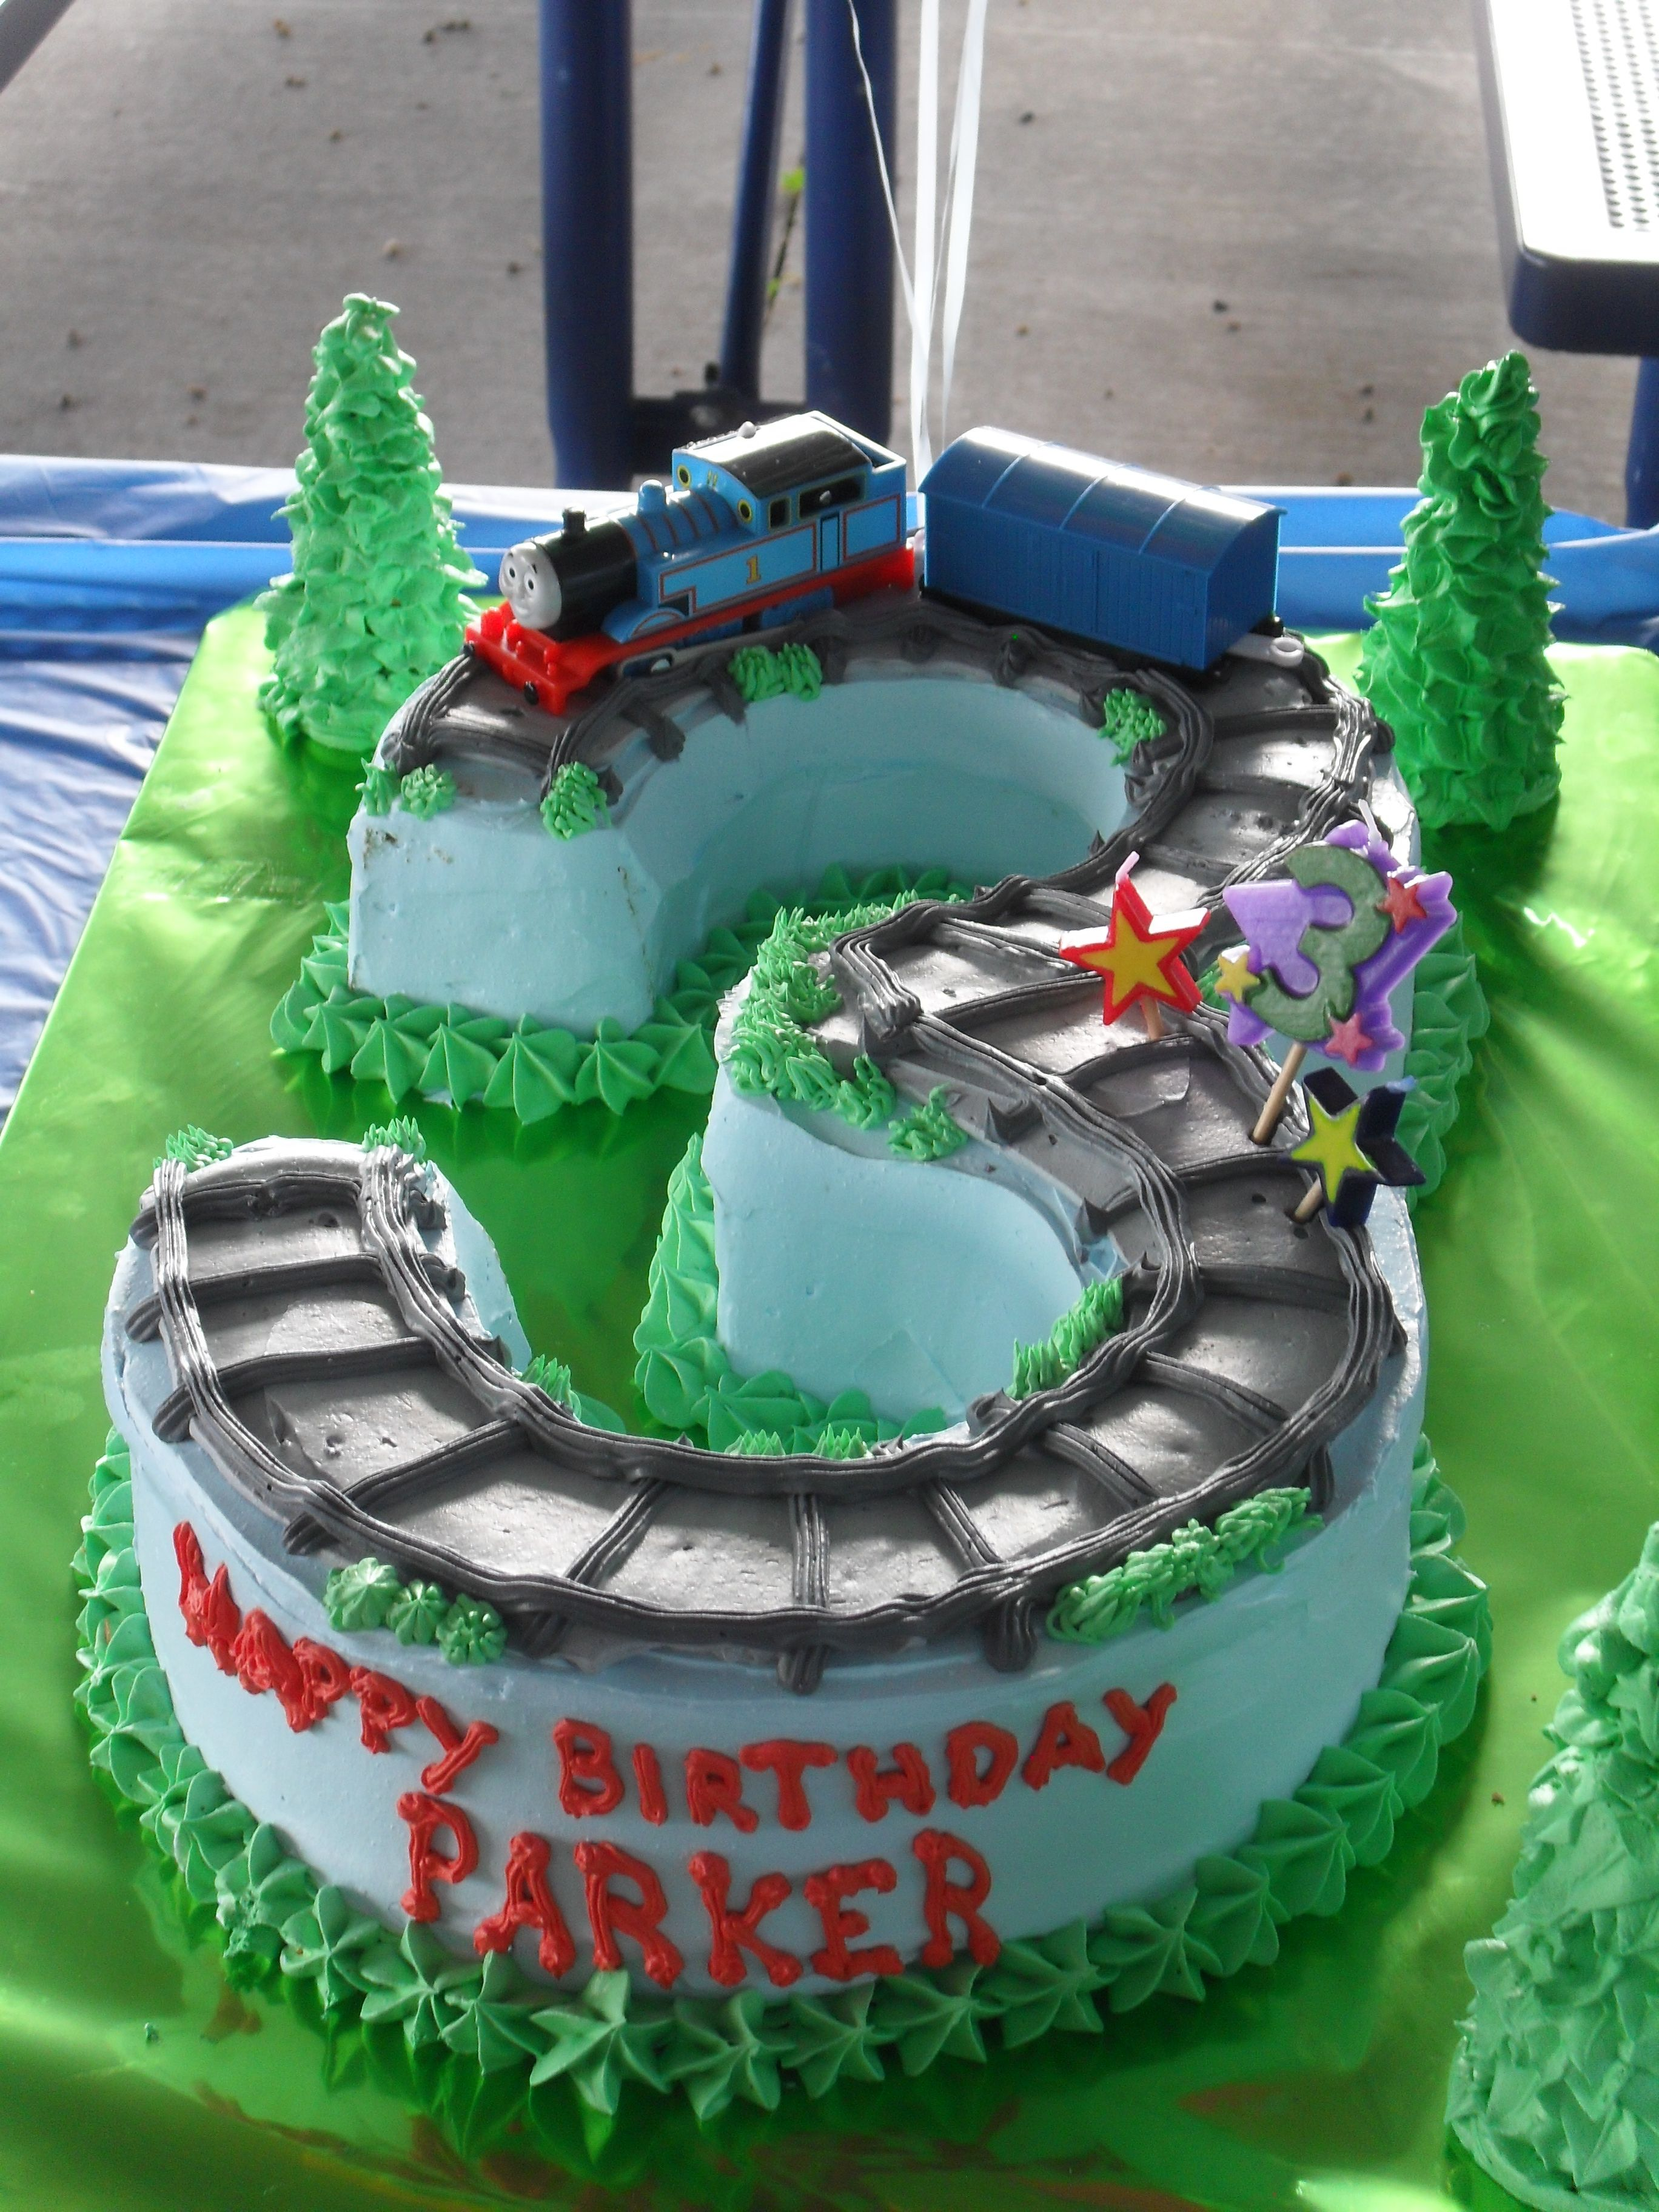 Peachy Parkers 3Rd Birthday Cake Thomas The Train With Images Train Personalised Birthday Cards Sponlily Jamesorg